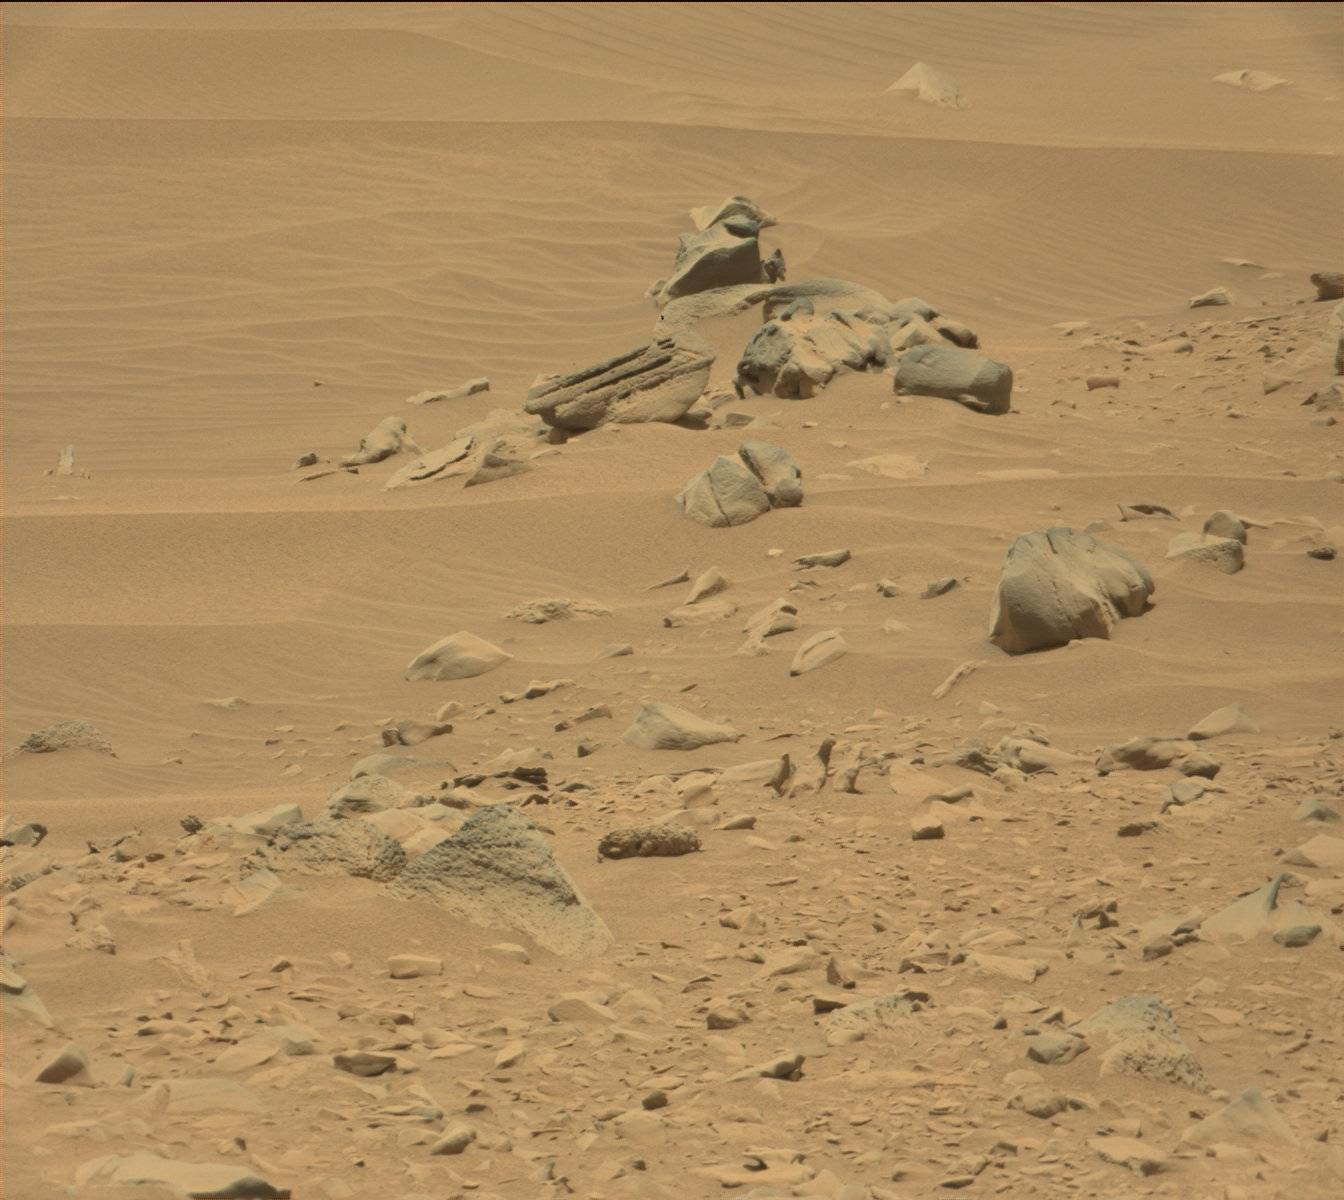 http://mars.jpl.nasa.gov/msl-raw-images/msss/00735/mcam/0735MR0031500320403107E01_DXXX.jpg